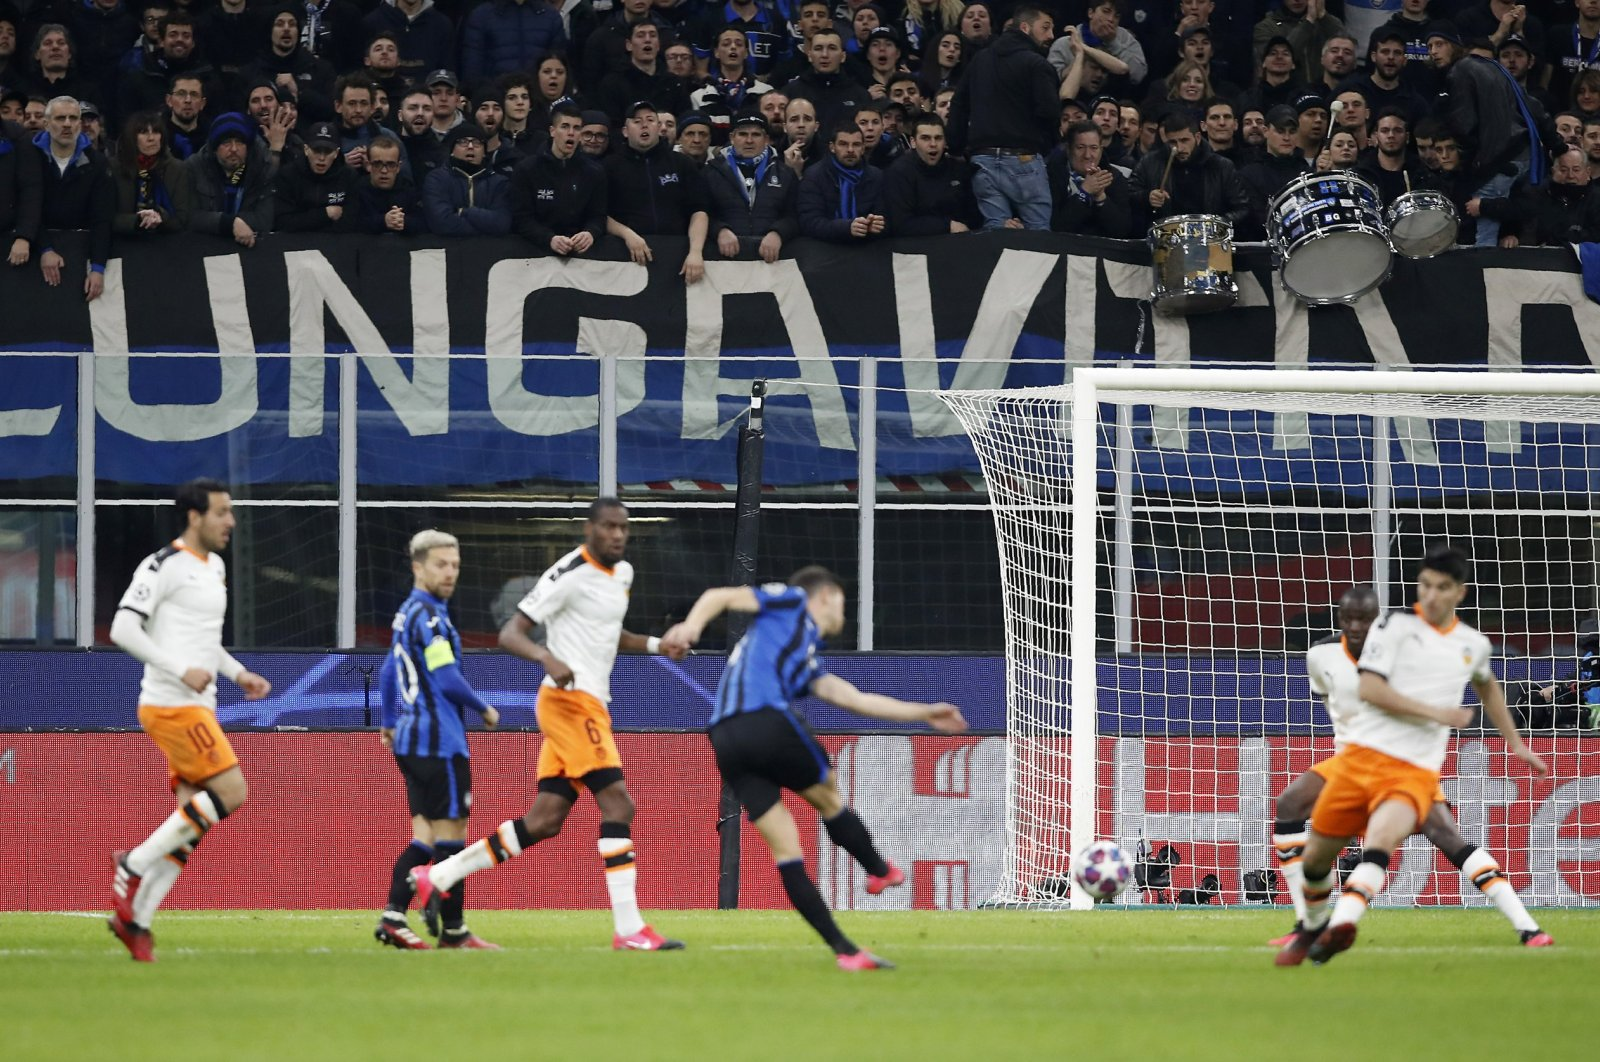 Spectators sit in the stands during the Champions League round of 16 match between Atalanta and Valencia at the San Siro stadium in Milan, Italy, Feb. 19, 2020. (AP Photo)